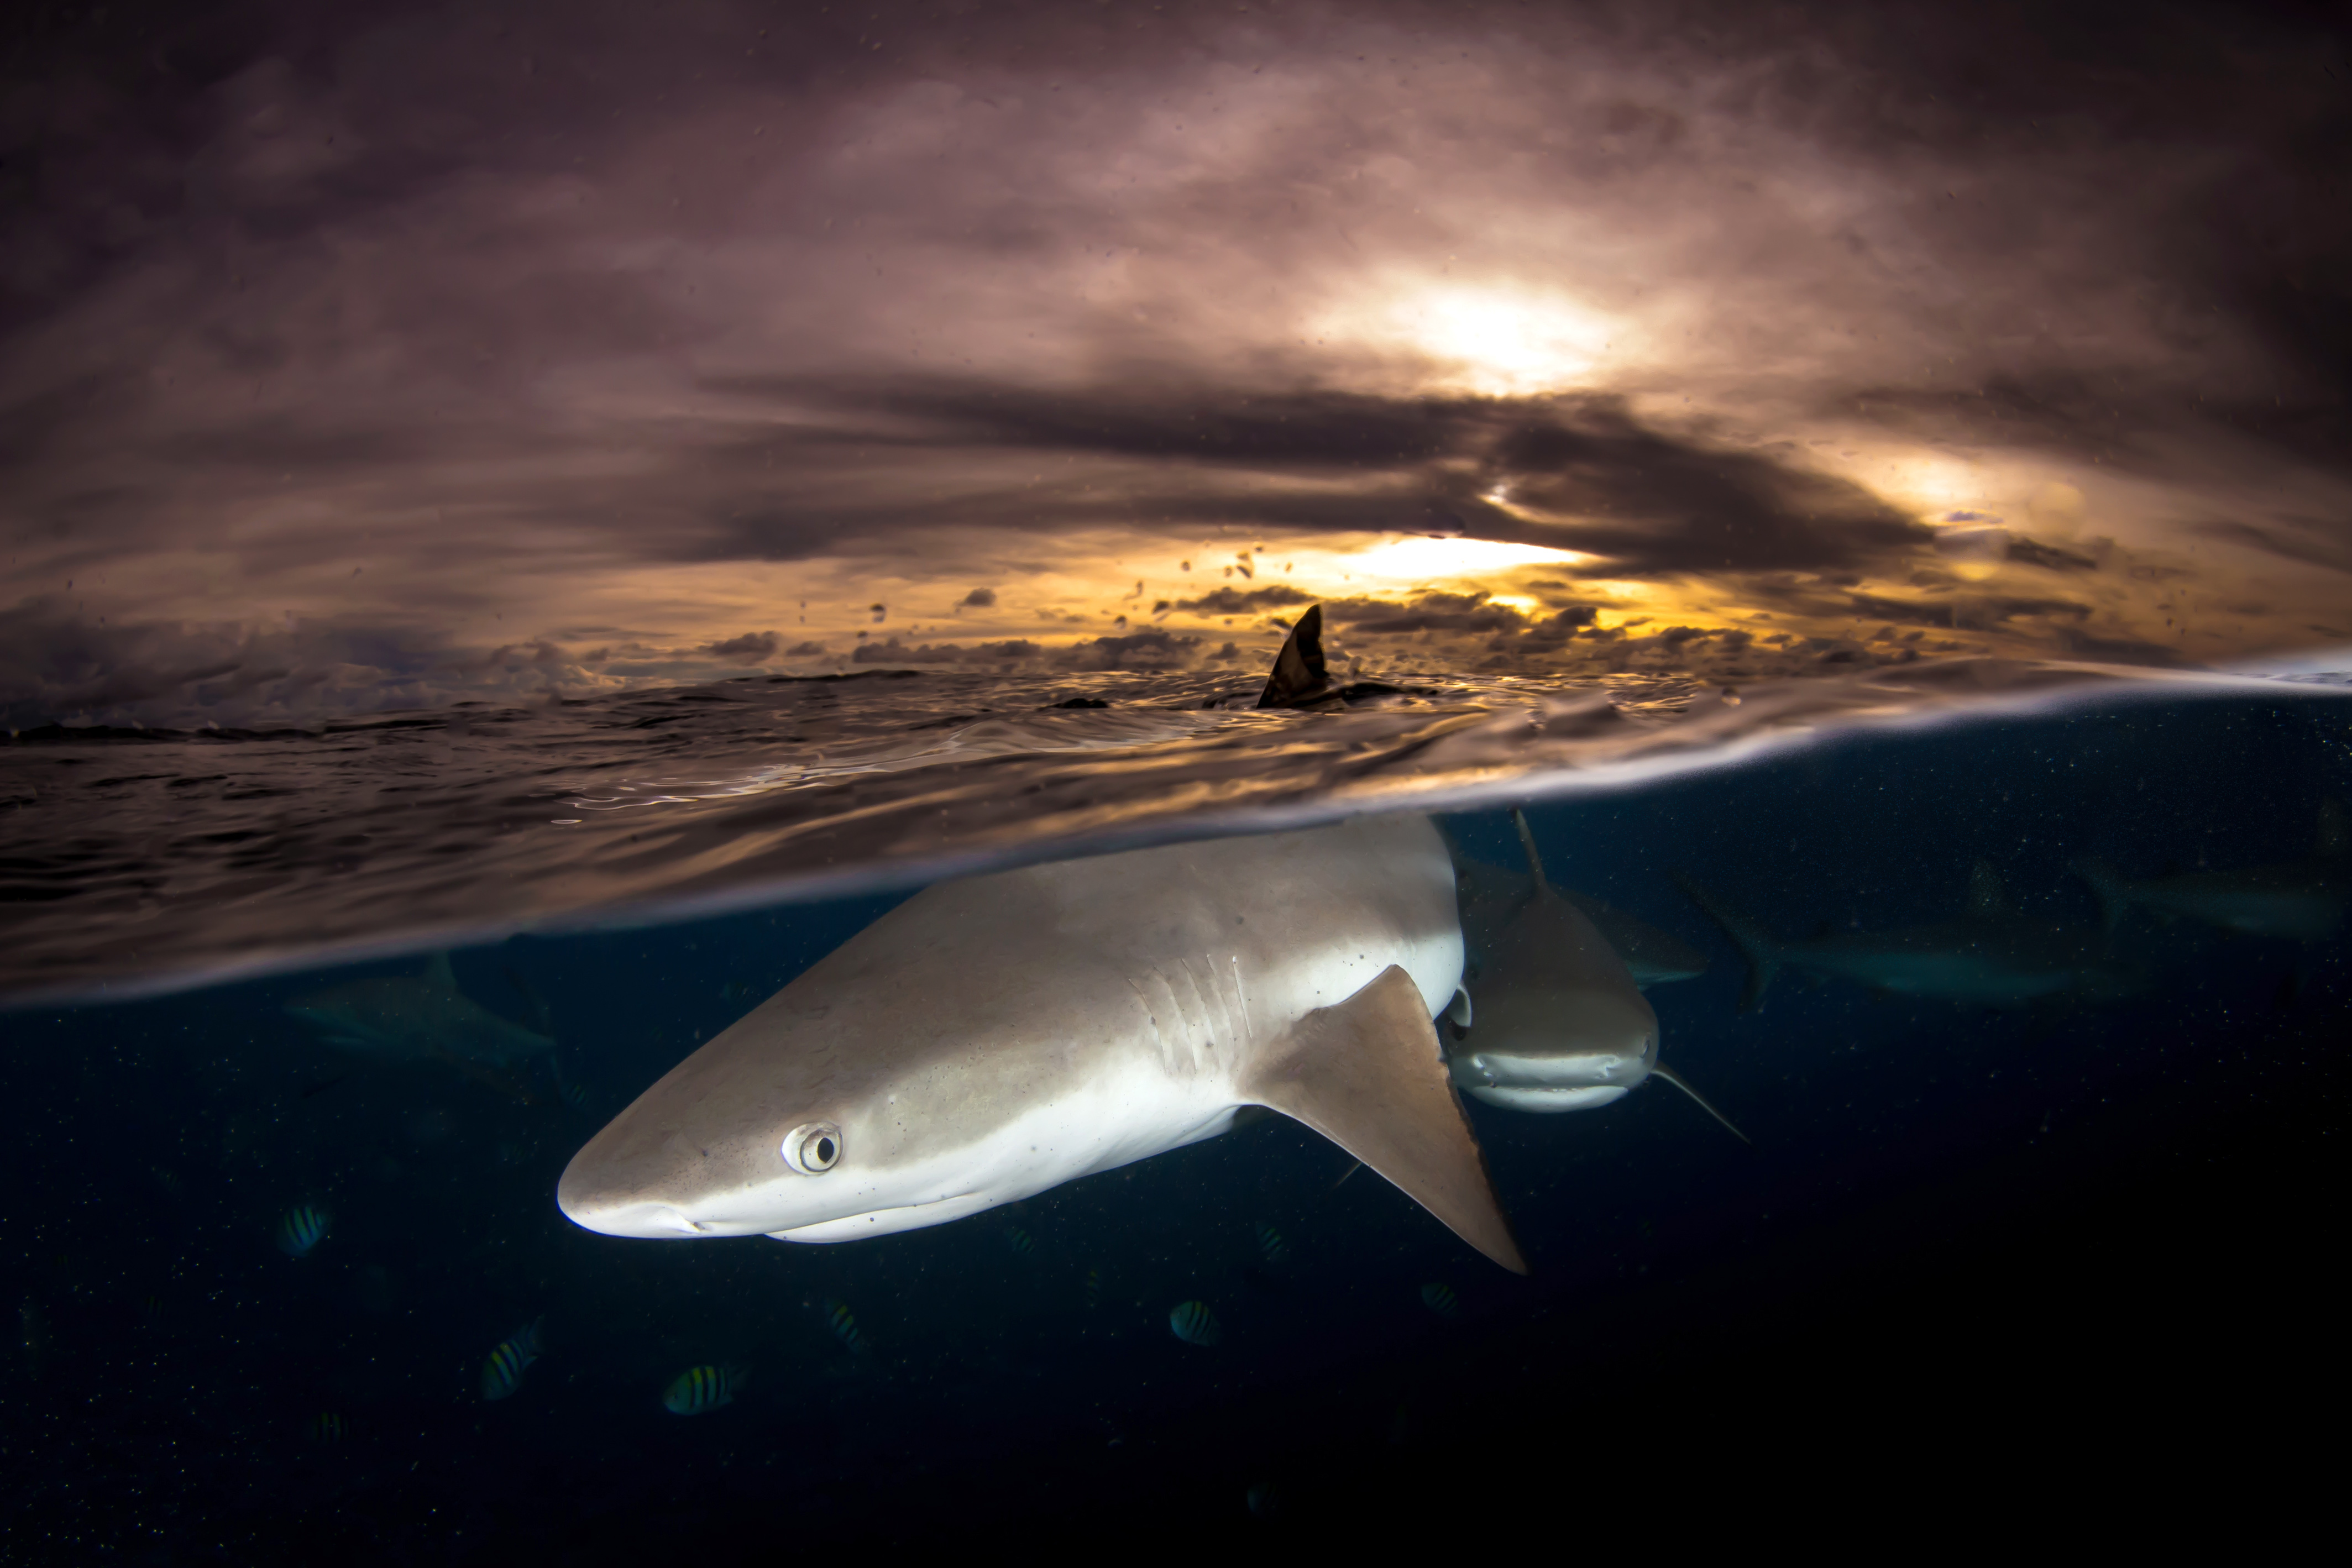 stunning shark shots show beasts above and below the water